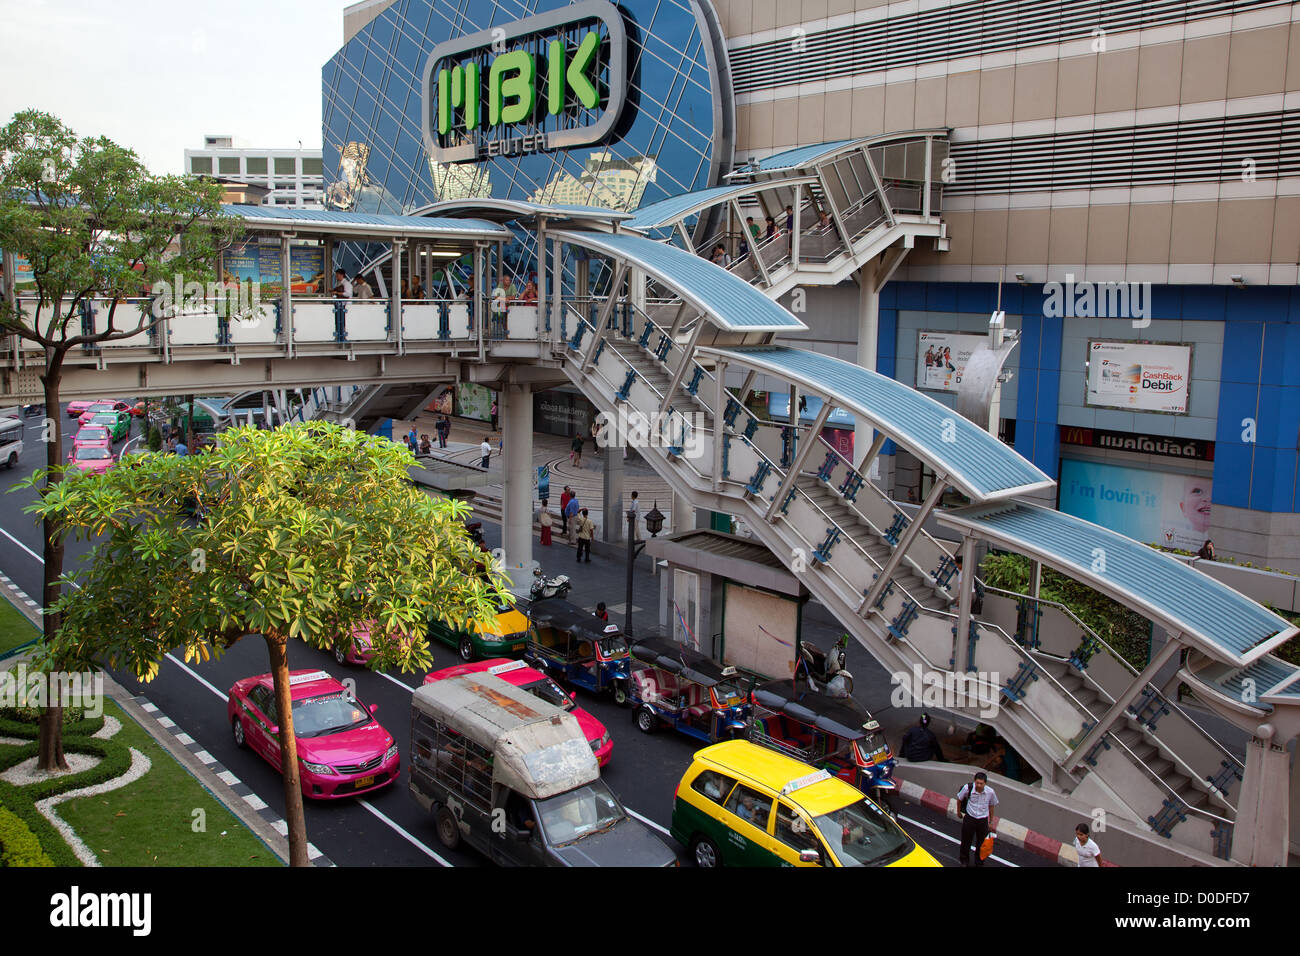 TRAFFIC IN FRONT OF THE MBK CENTER ONE OF THE BIGGEST SHOPPING MALLS